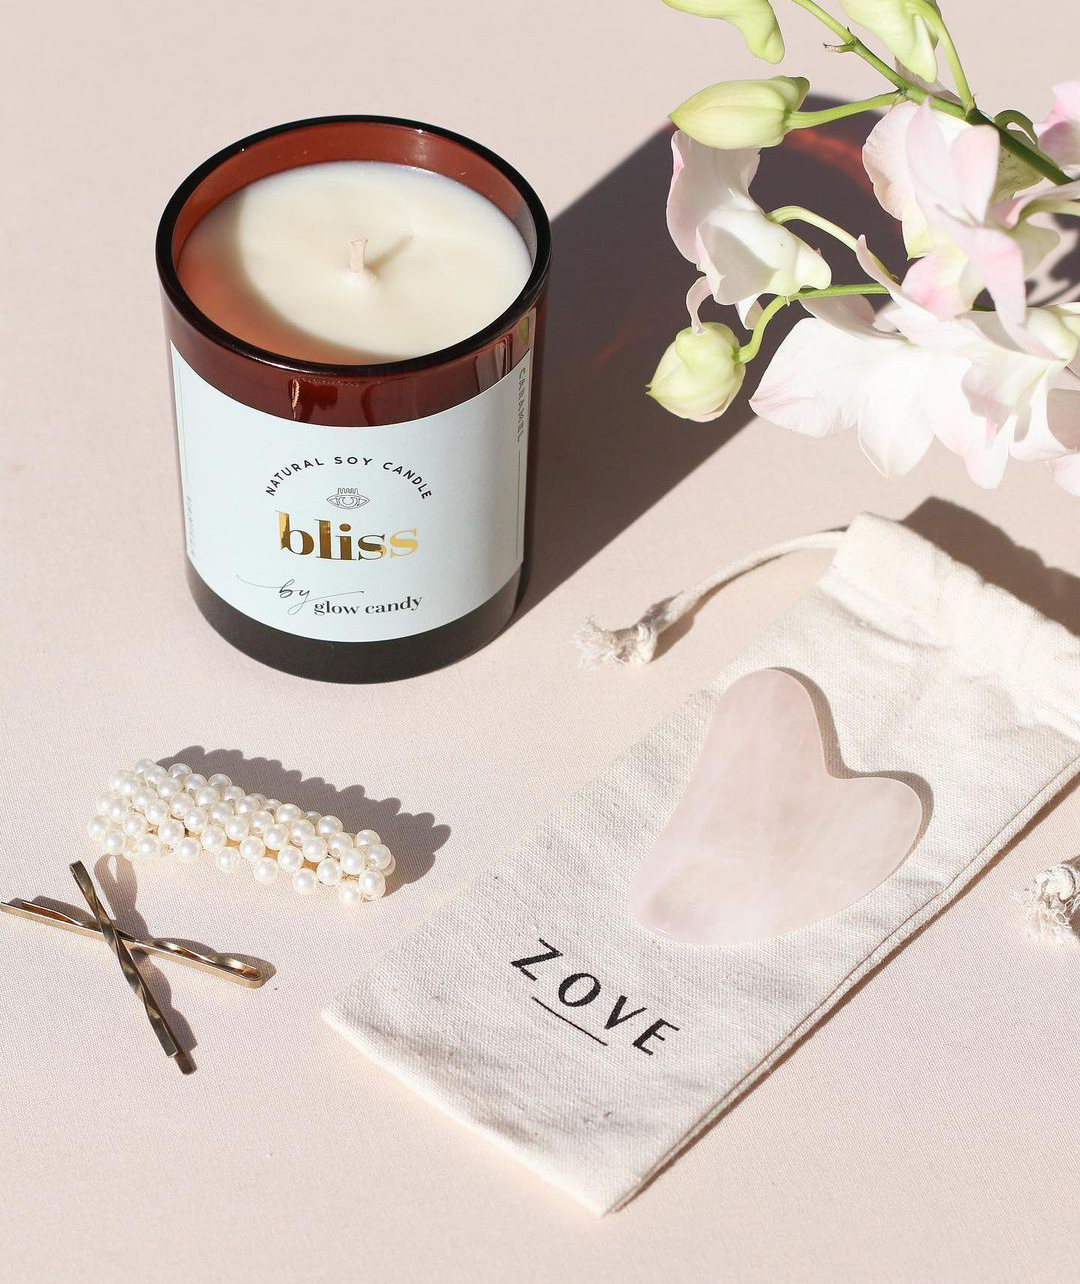 A photograph by one of Glow Candy's customers, shared to social media. The photo shows the 'Bliss' candle positioned alongside a beauty product by Zove and a bouquet of flowers.